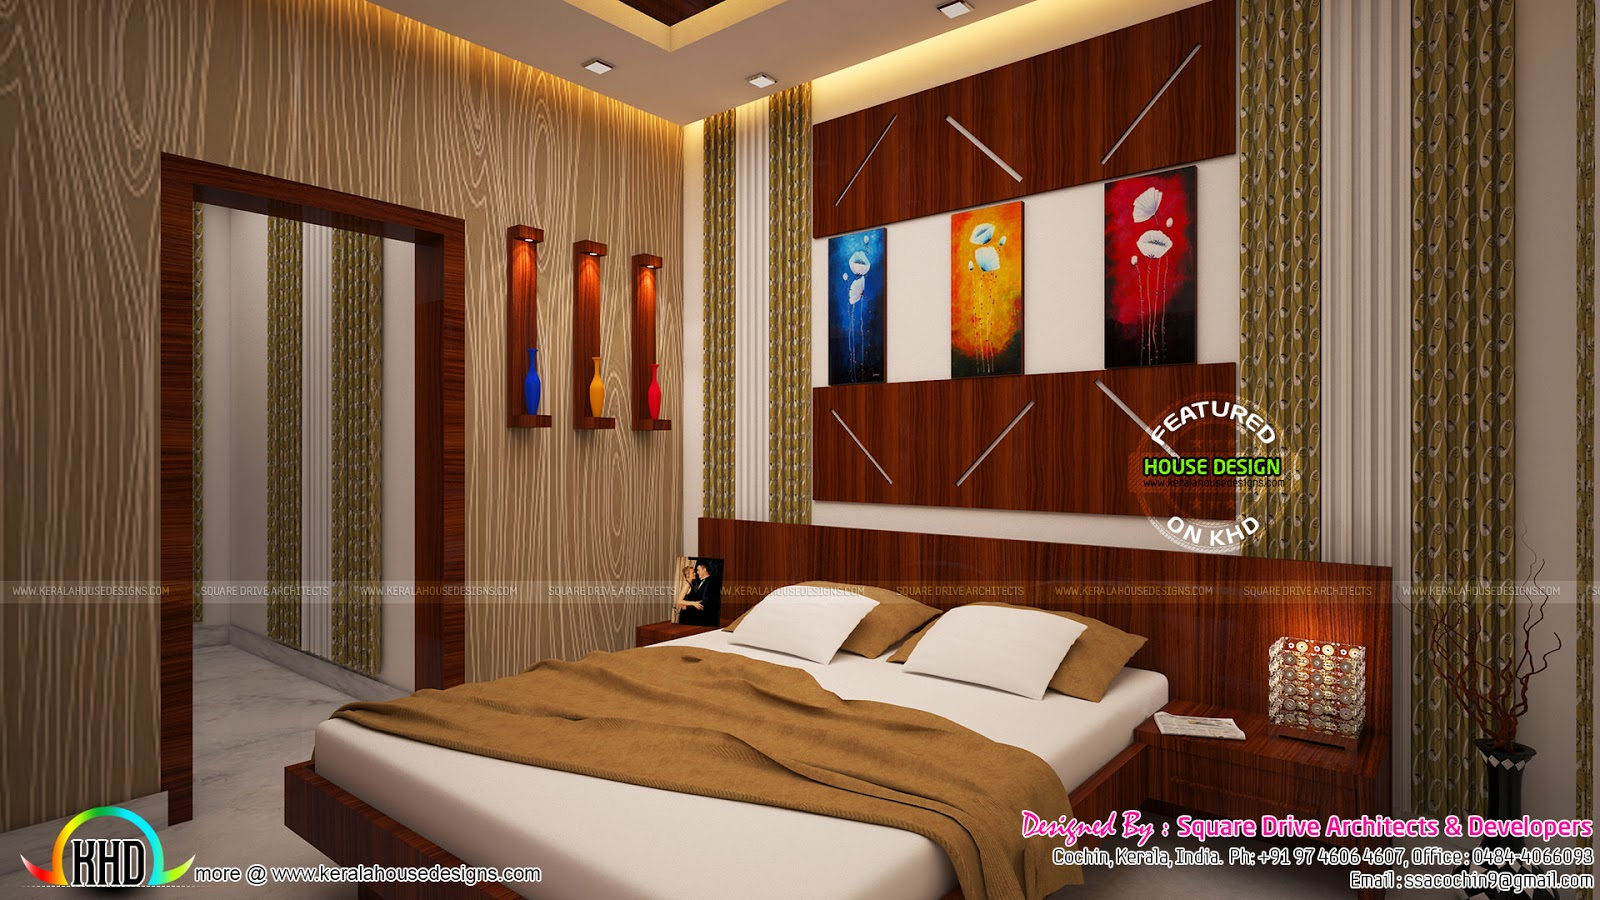 2 bedroom interior designs kerala home design and floor plans. Black Bedroom Furniture Sets. Home Design Ideas